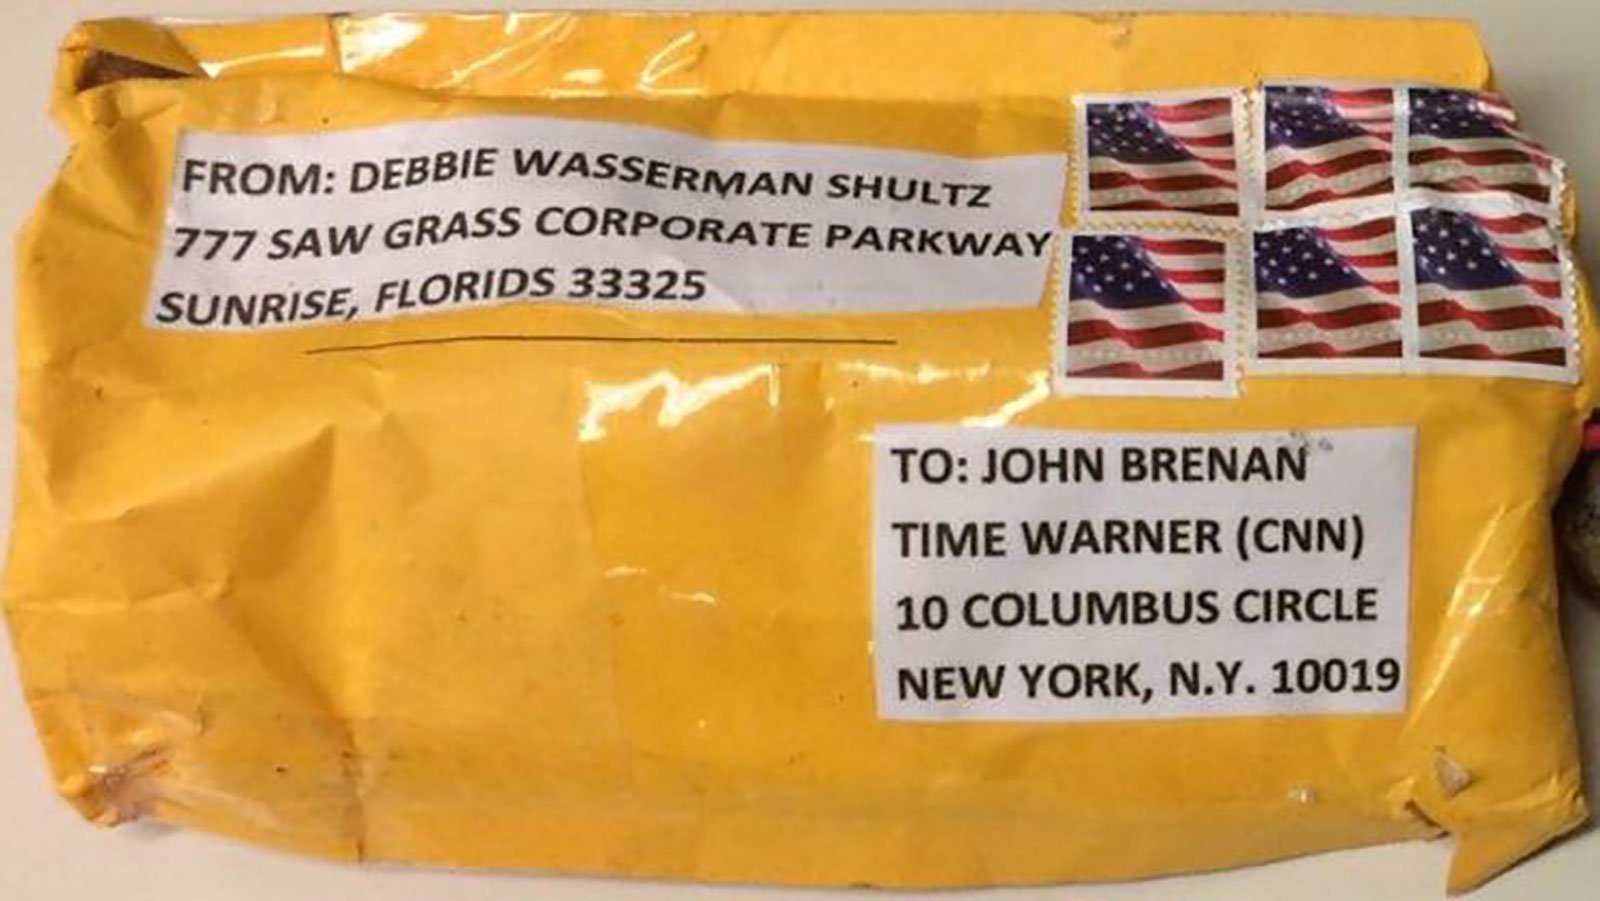 """The device sent to the Time Warner Center was a """"live explosive device,"""" NYPD Commissioner James O'Neill said at an afternoon news conference, adding that police were also investigating an envelope containing white powder that was found as part of the """"original packaging"""" of the device."""